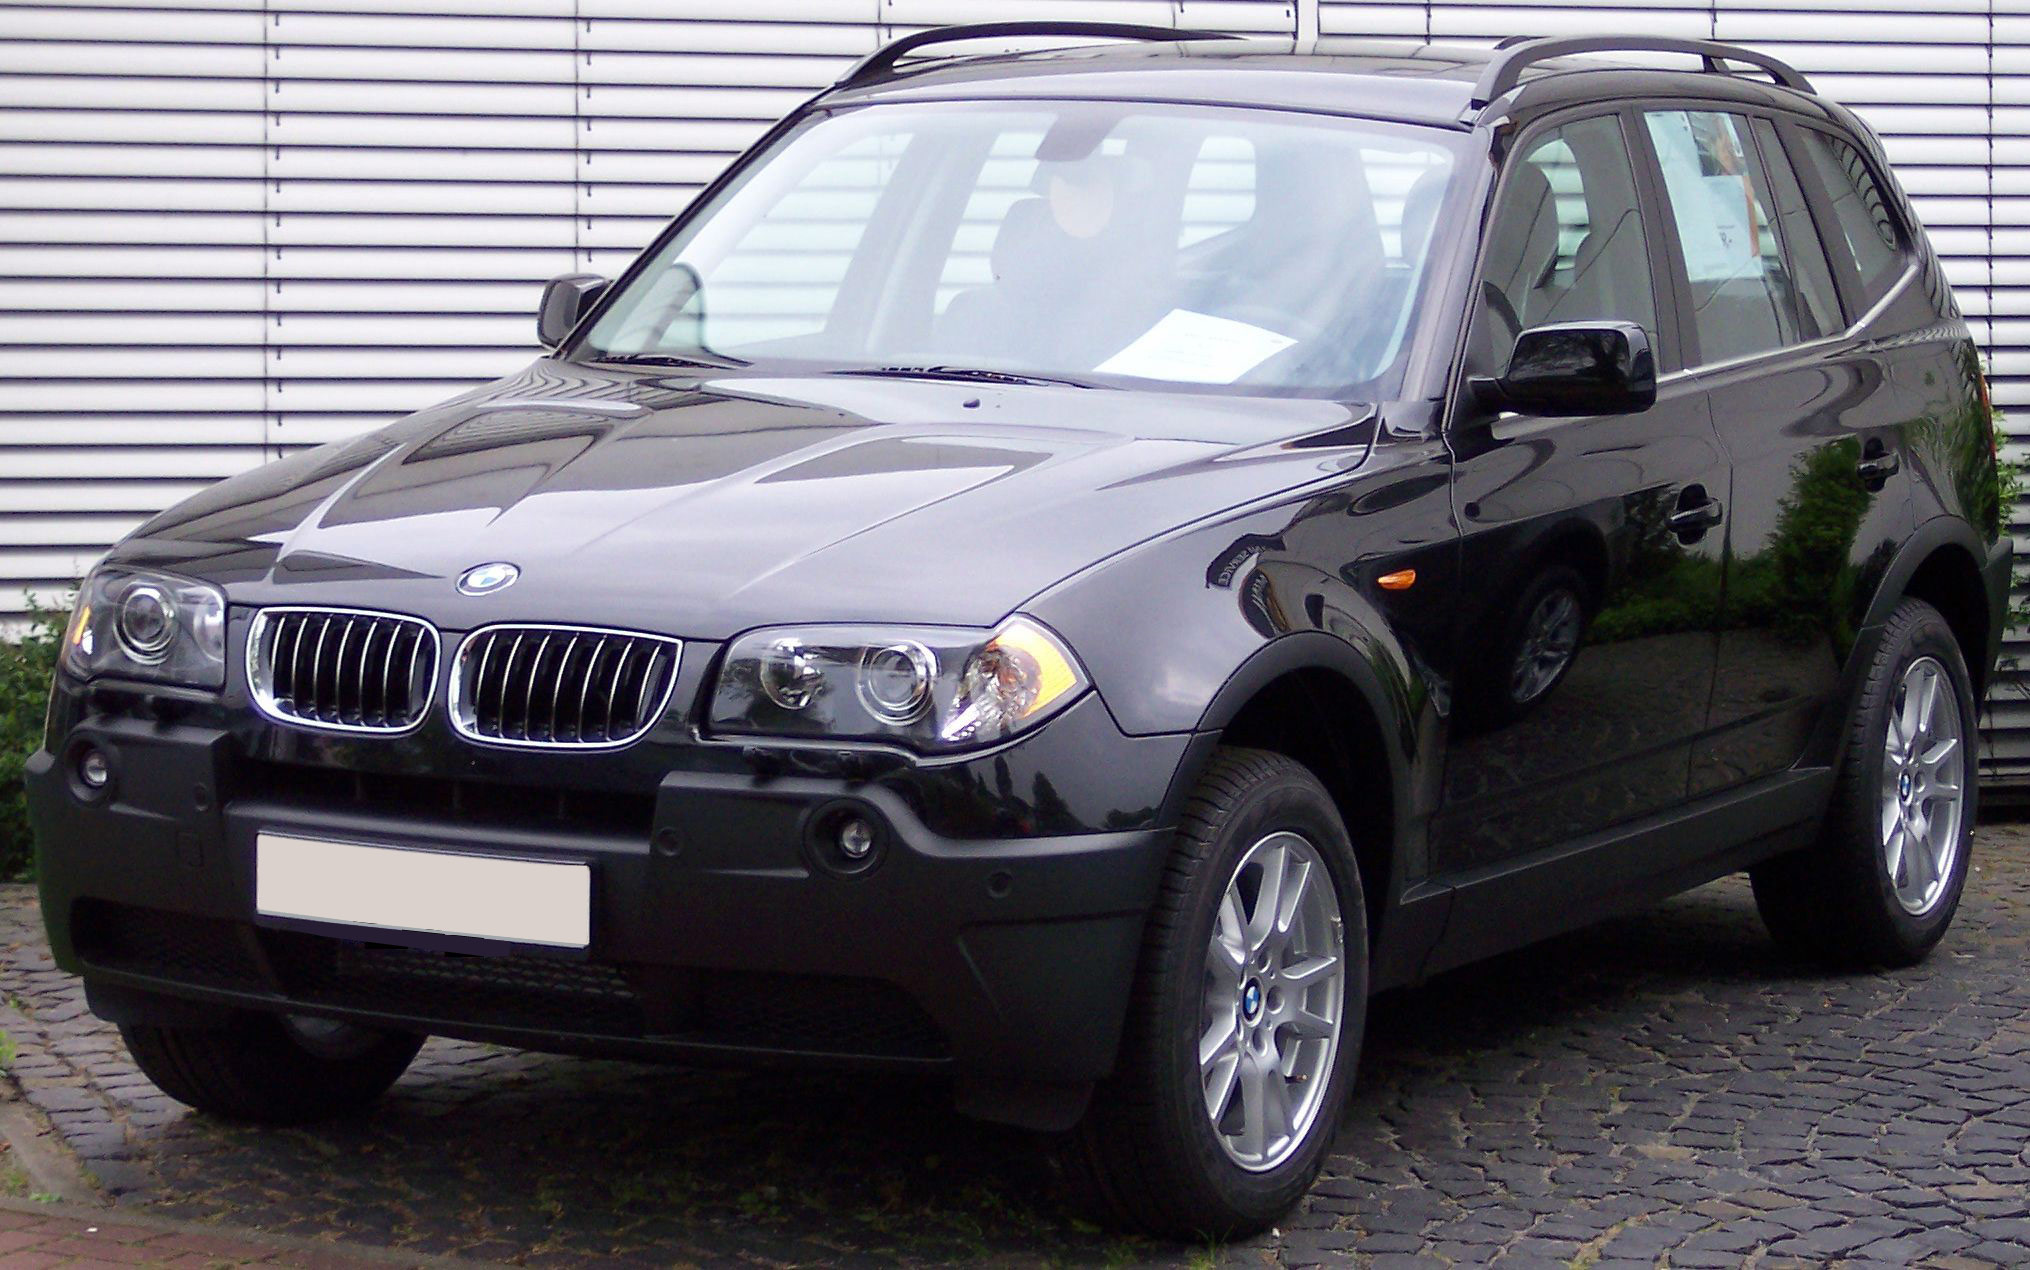 archivo bmw x3 black wikipedia la enciclopedia libre. Black Bedroom Furniture Sets. Home Design Ideas